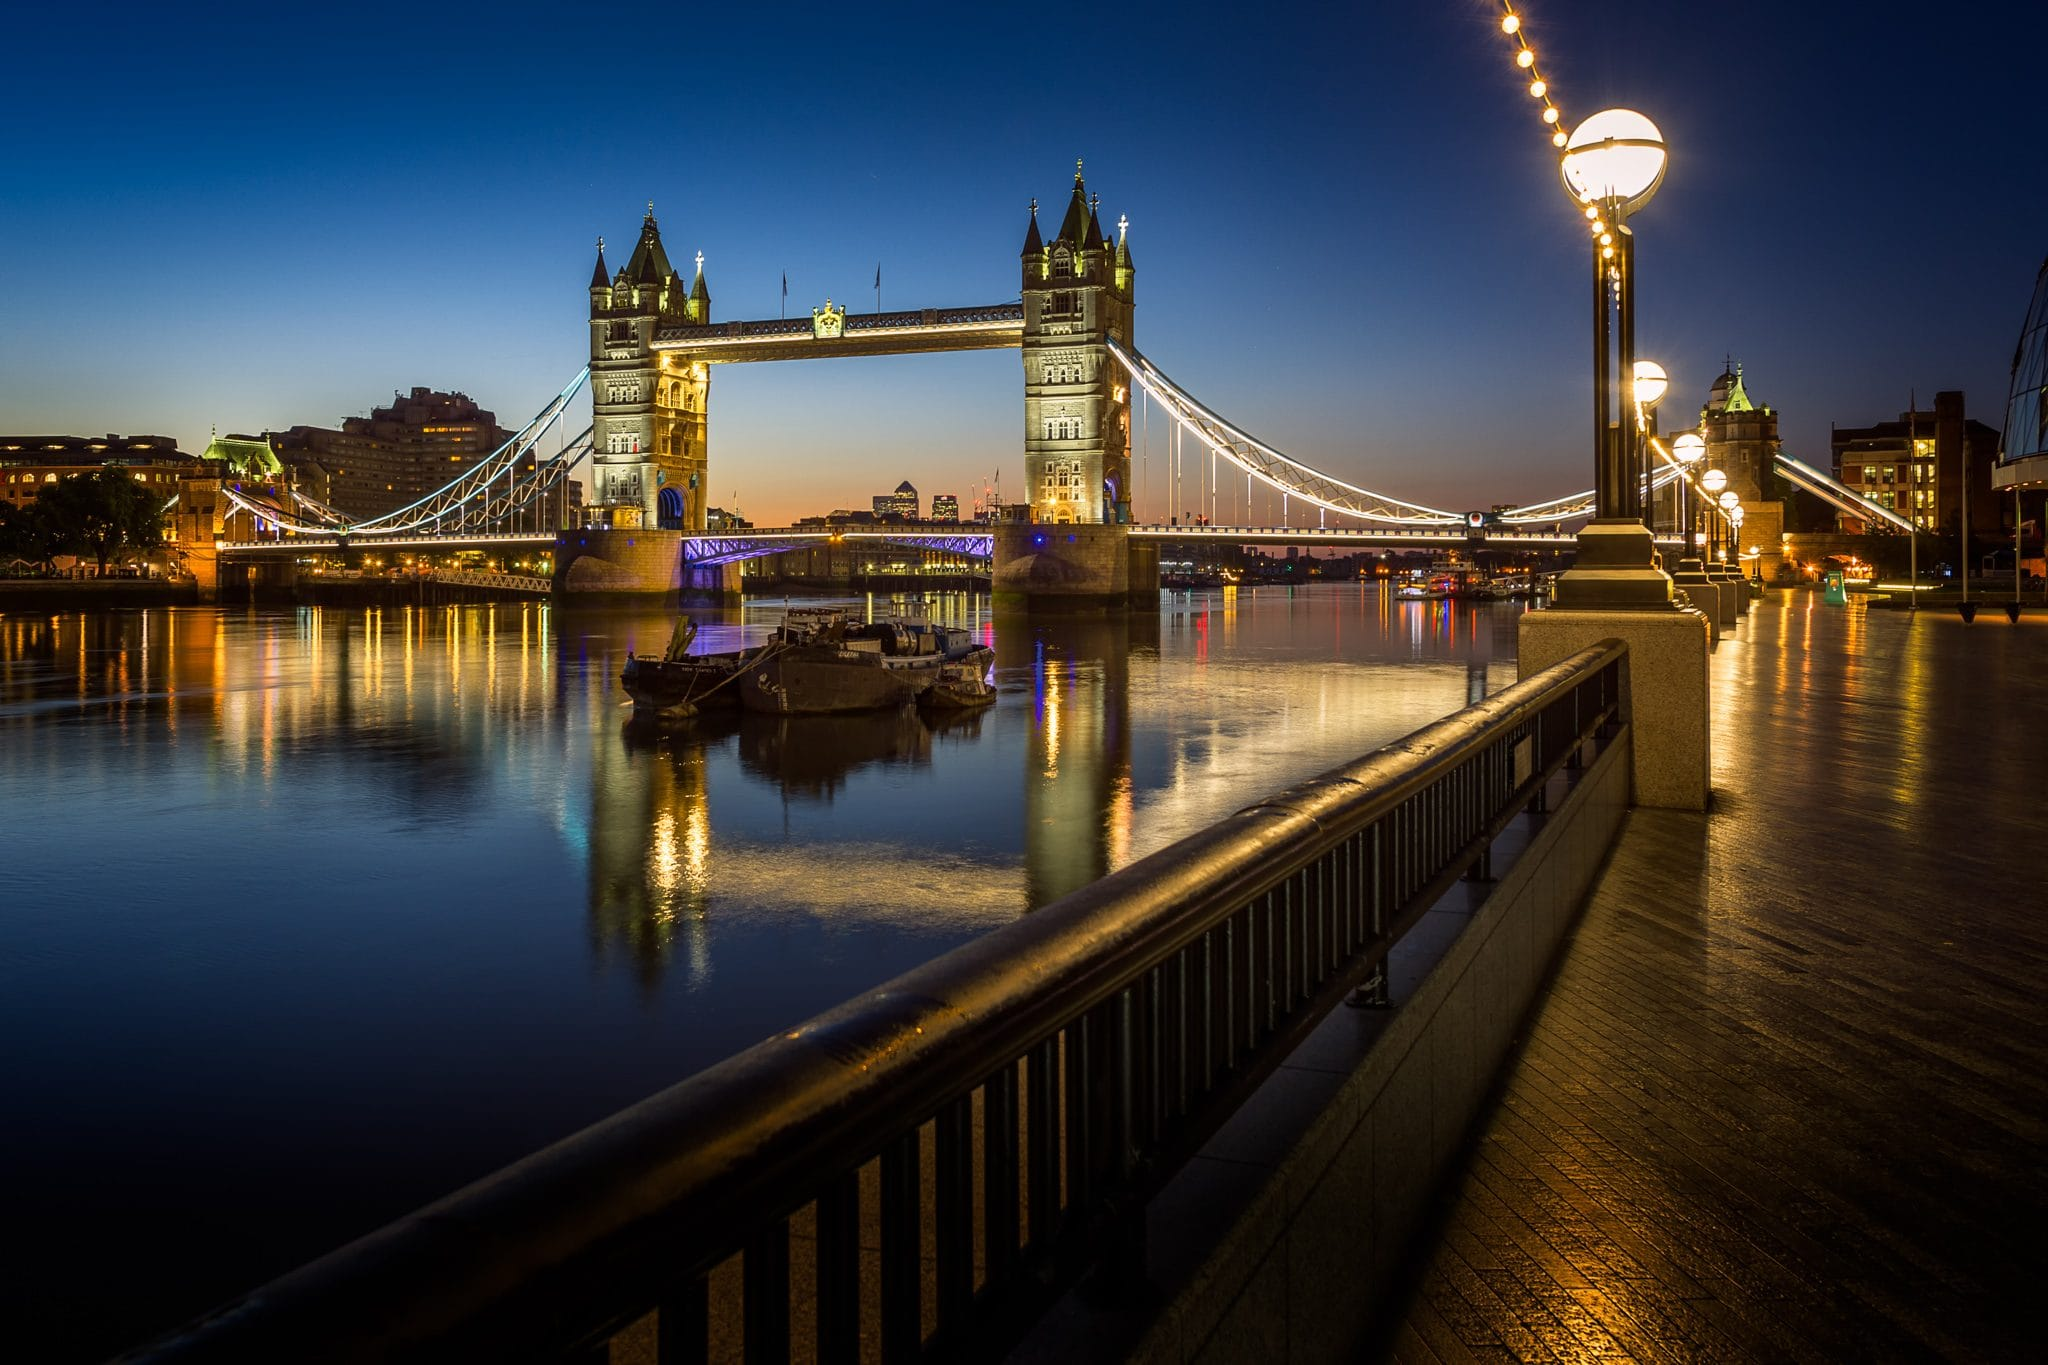 London Tower Bridge bei Sonnenaufgang, England.